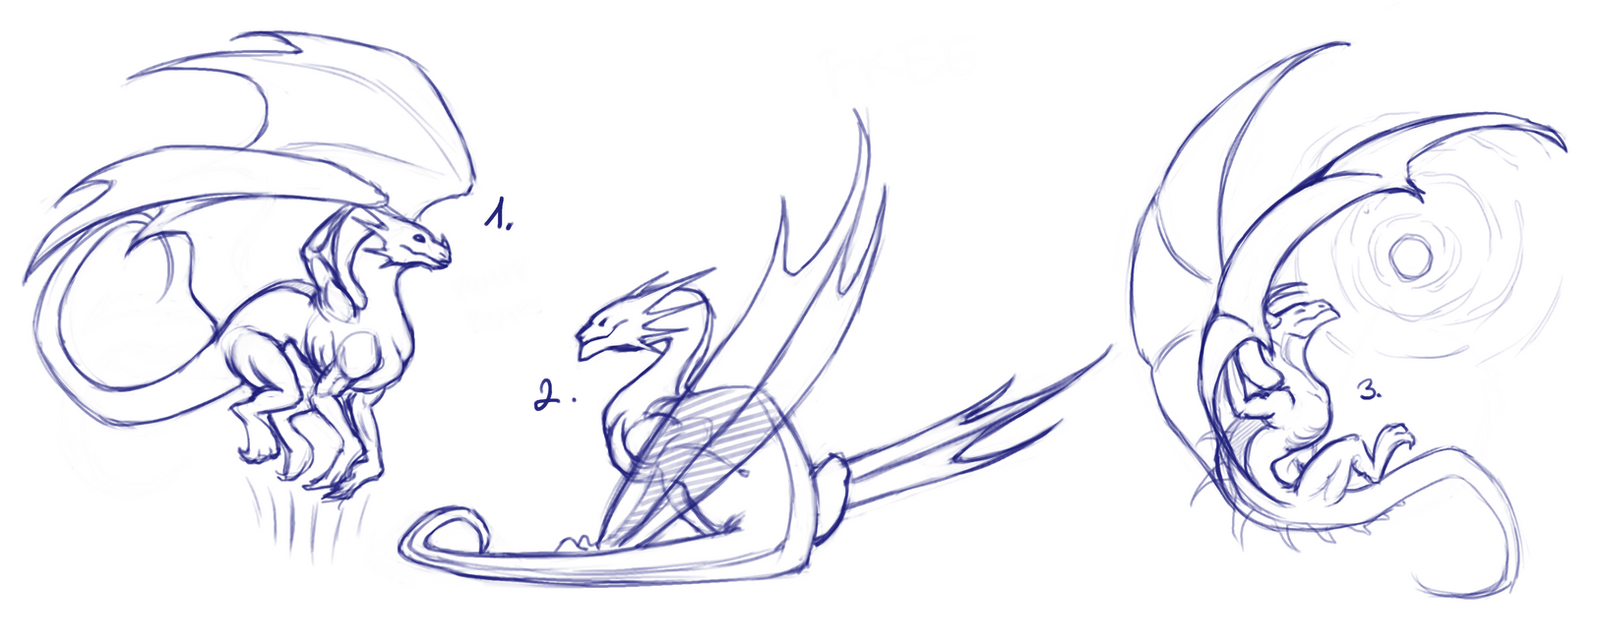 dragon pose references for free by poci16 on deviantart